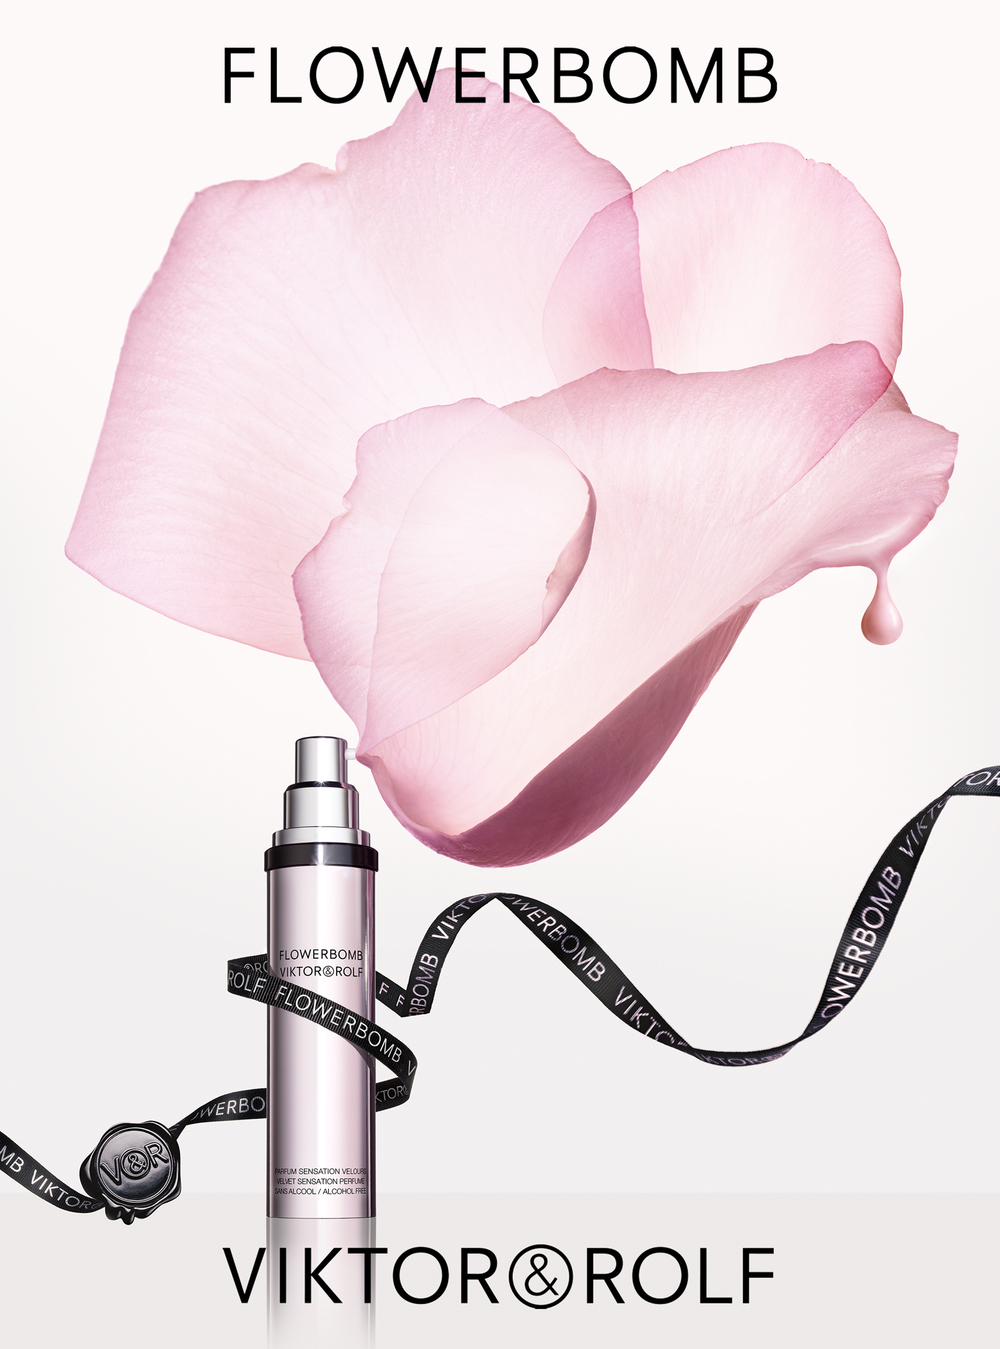 Victor & Rolf Flowerbomb Mouse